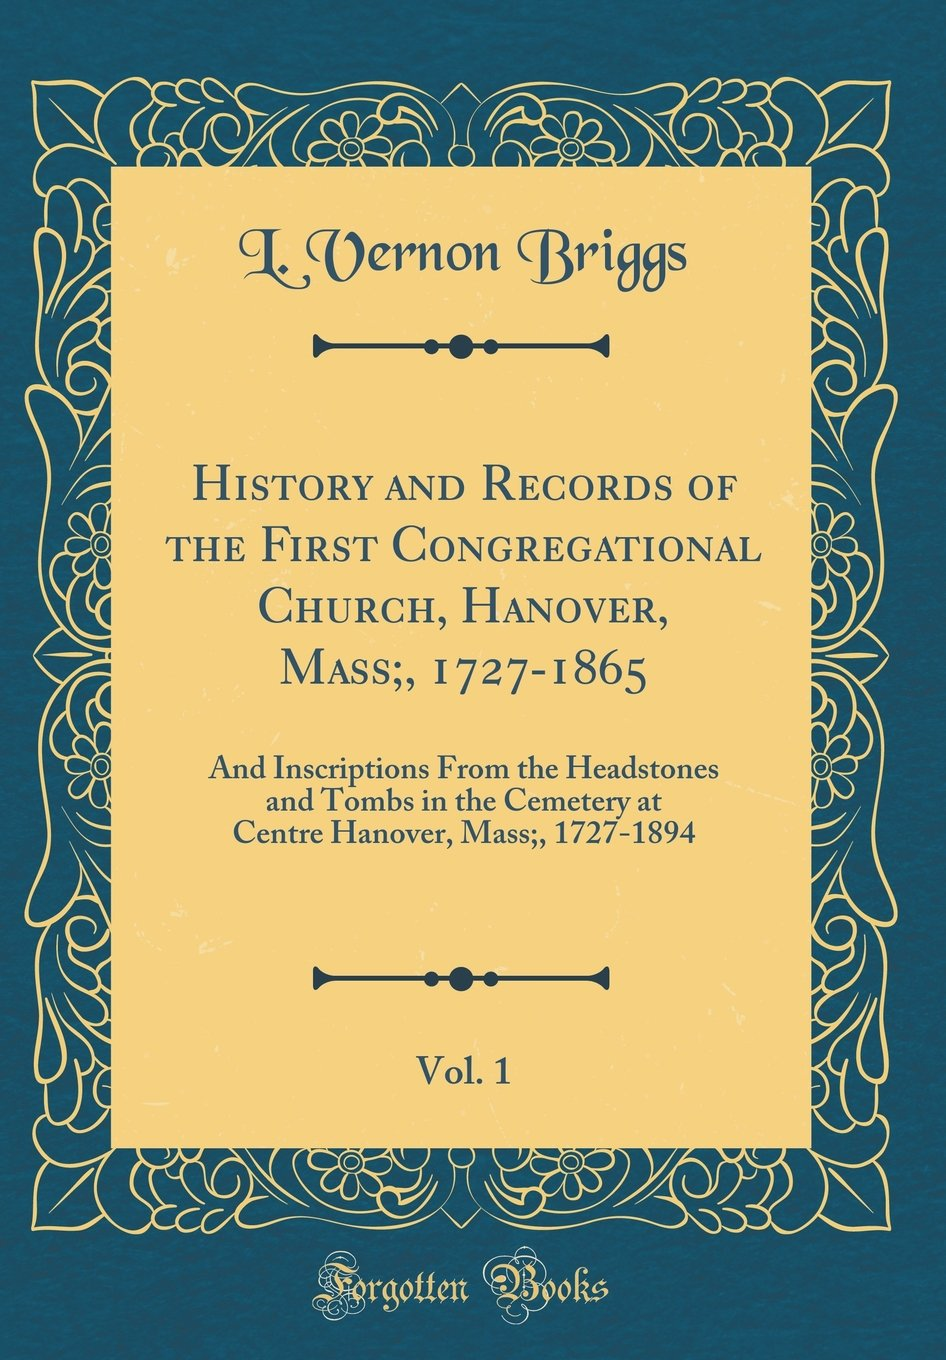 Download History and Records of the First Congregational Church, Hanover, Mass;, 1727-1865, Vol. 1: And Inscriptions From the Headstones and Tombs in the ... Hanover, Mass;, 1727-1894 (Classic Reprint) ebook